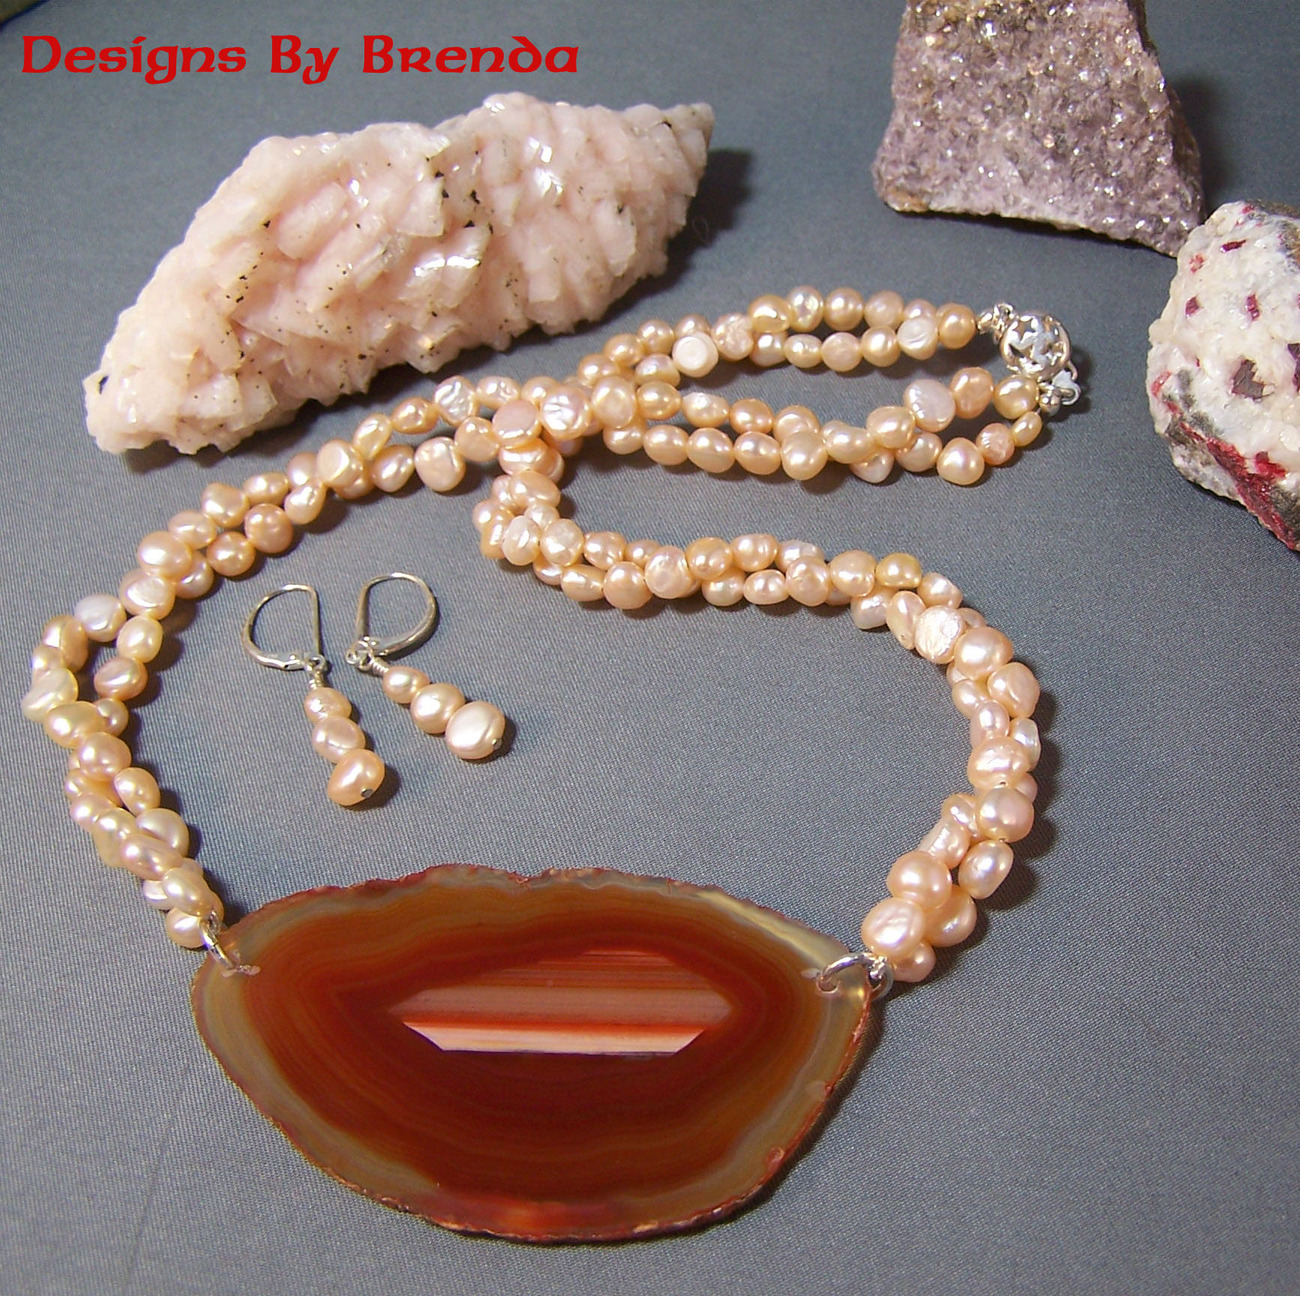 Orange agate slice peach pearls set